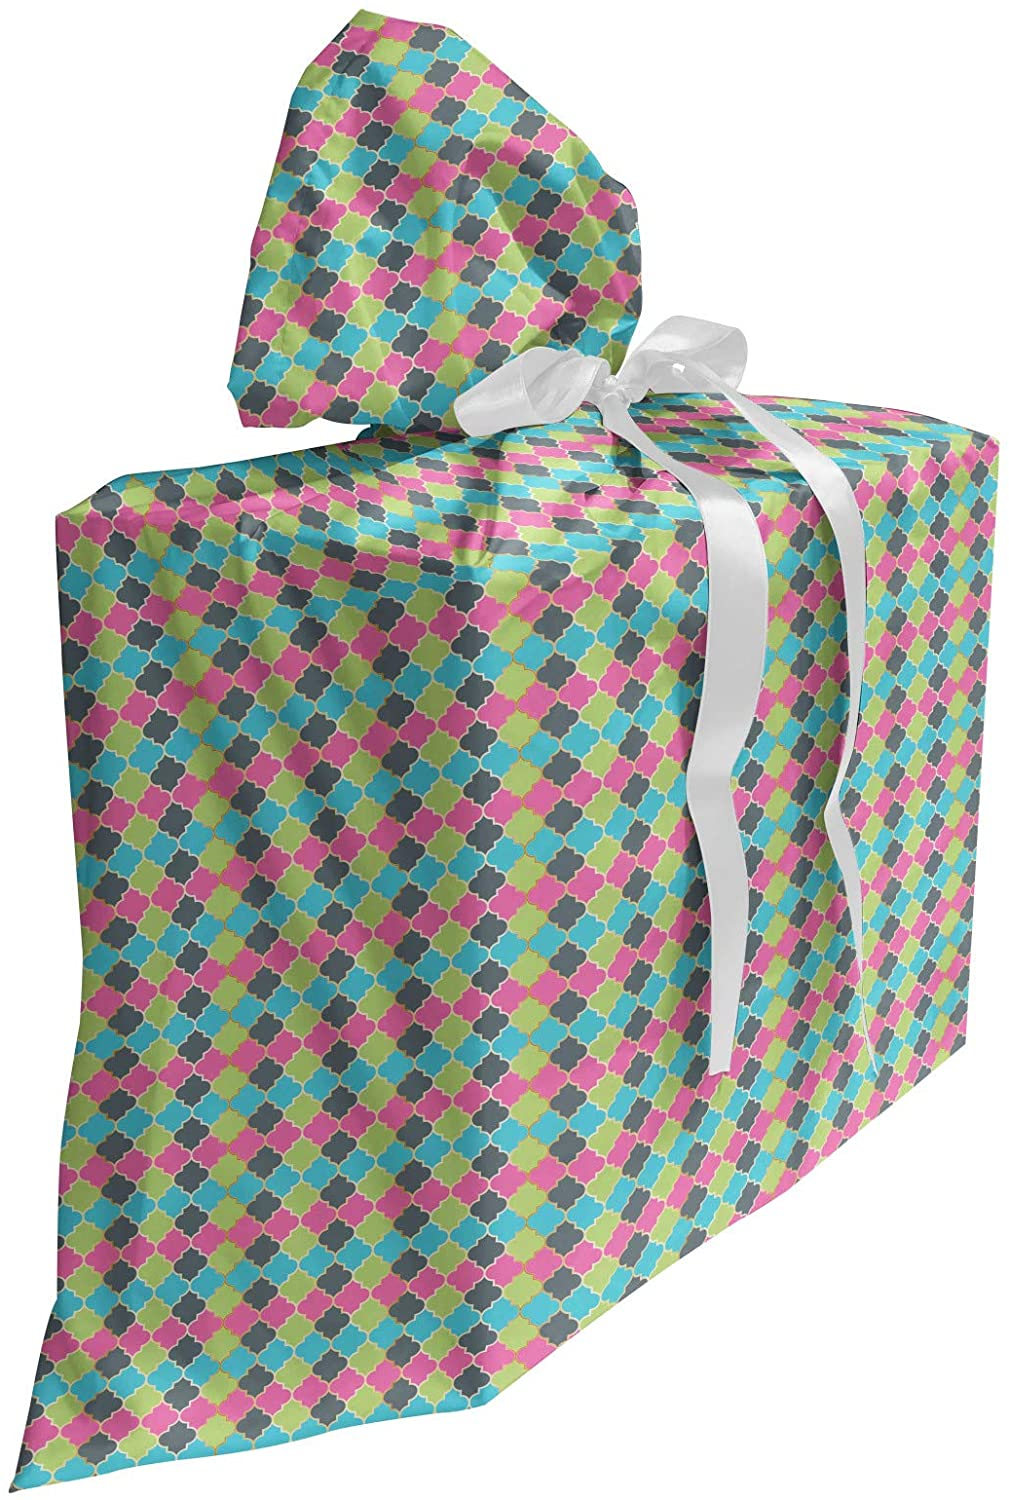 Ambesonne Quatrefoil Fabric Gift Bag, Colorful Oriental Moroccan Pattern Repetitive Energetic Pattern Print, Present Sack for Baby Showers Birthdays with 3 Ribbons, 27